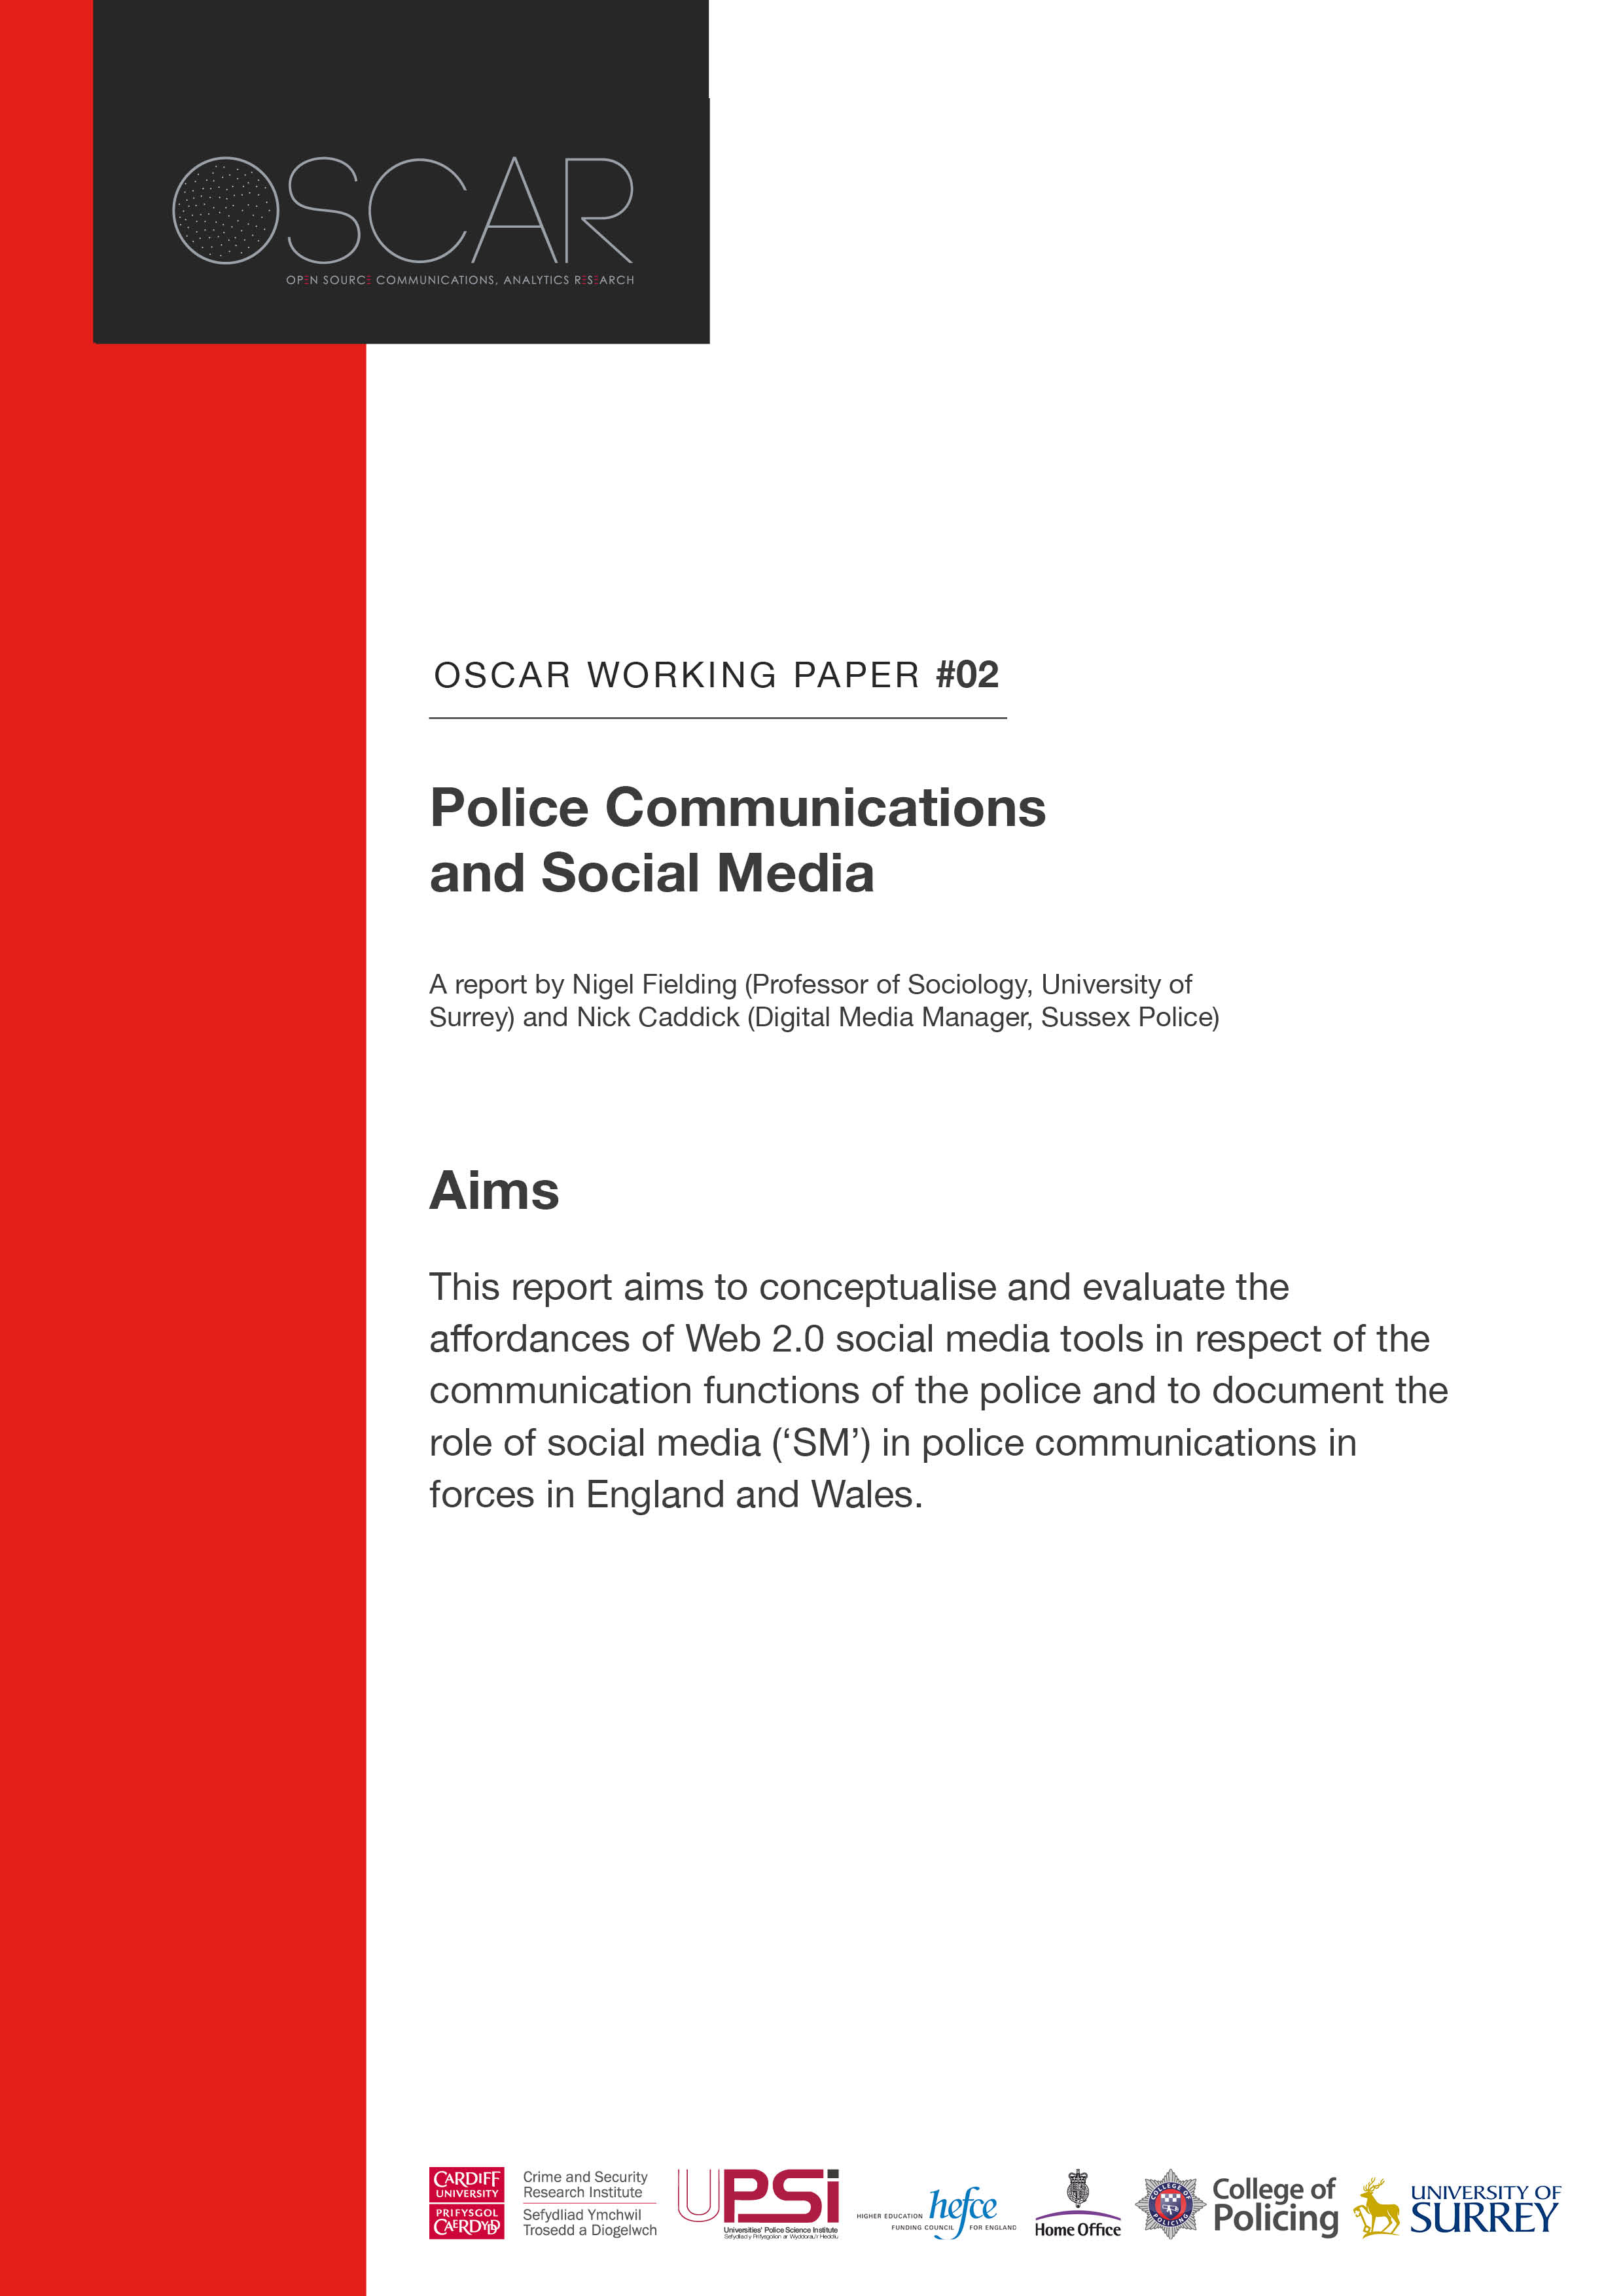 Police Communications and Social Media